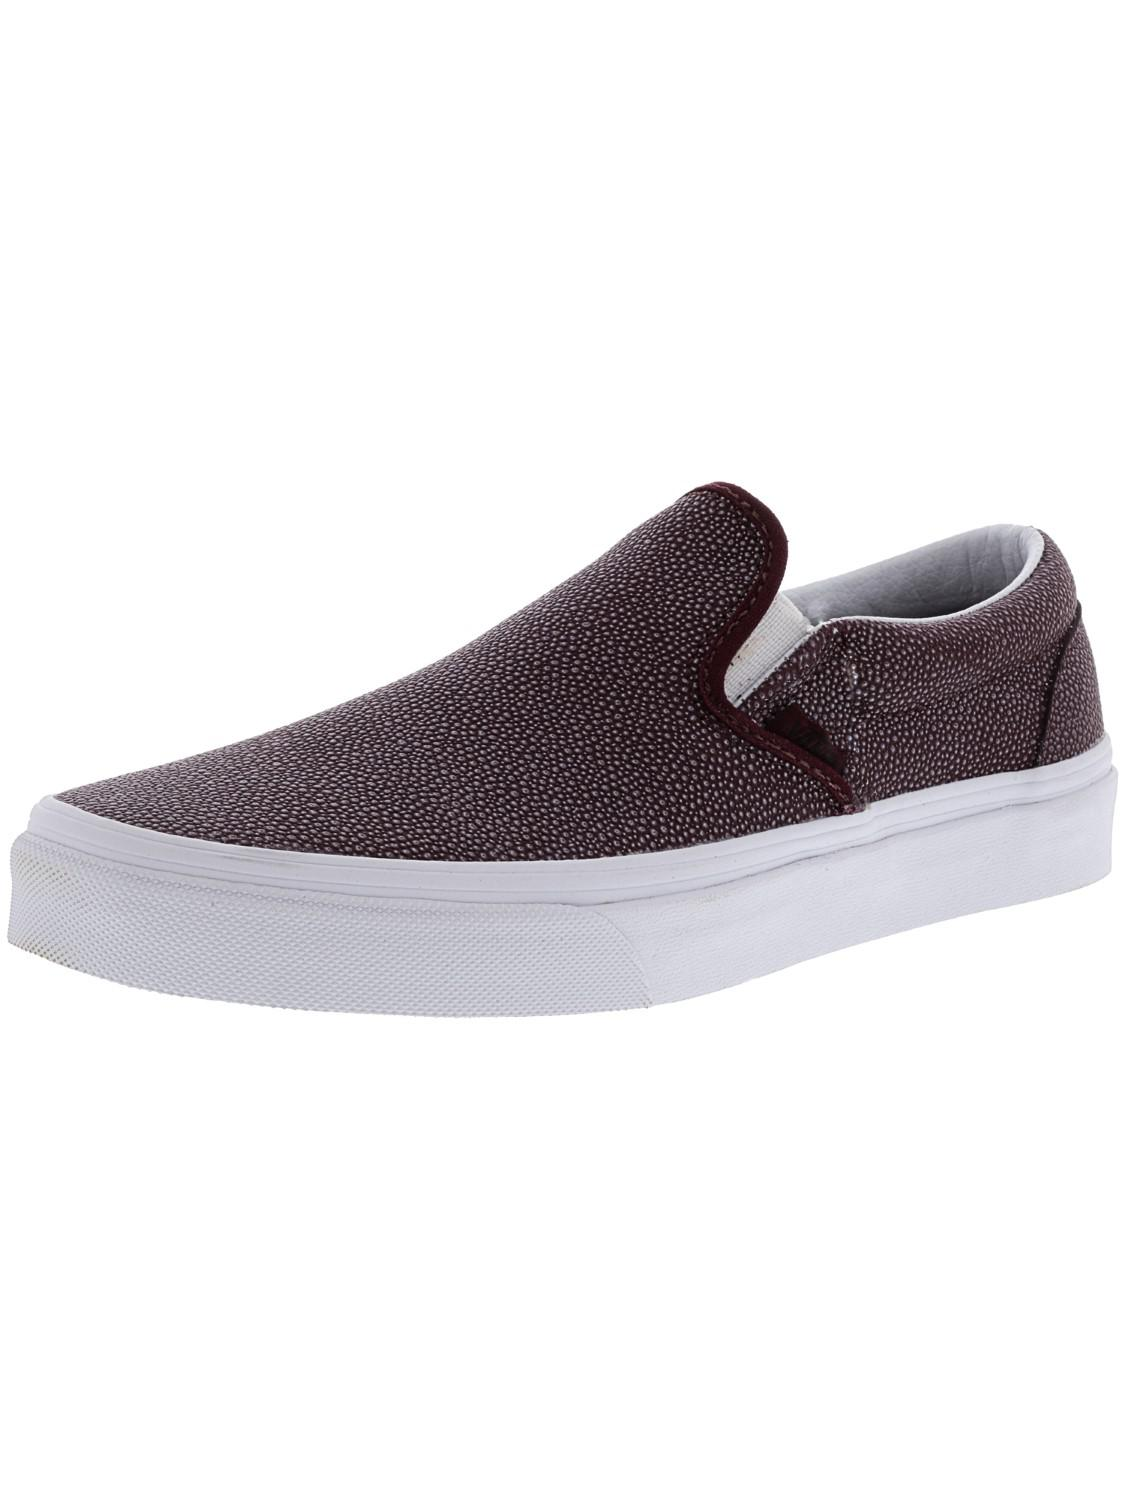 4cf0c7c806 Lyst - Vans Classic Slip-on Embossed Stingray Ankle-high Leather ...